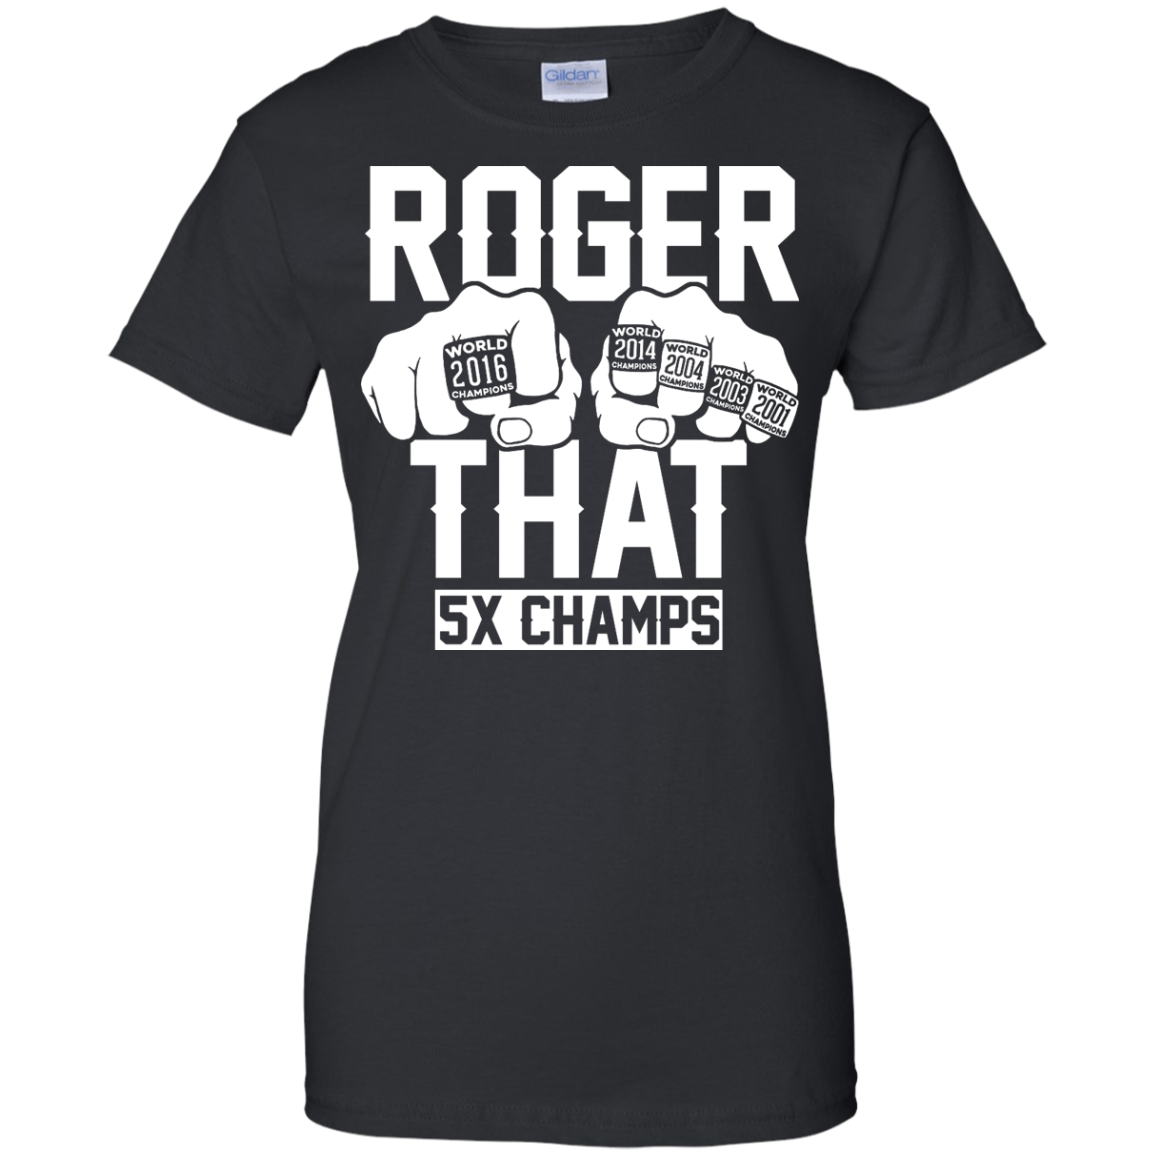 image 847px Roger That 5x Champs – Brady Trolls Goodell T Shirts